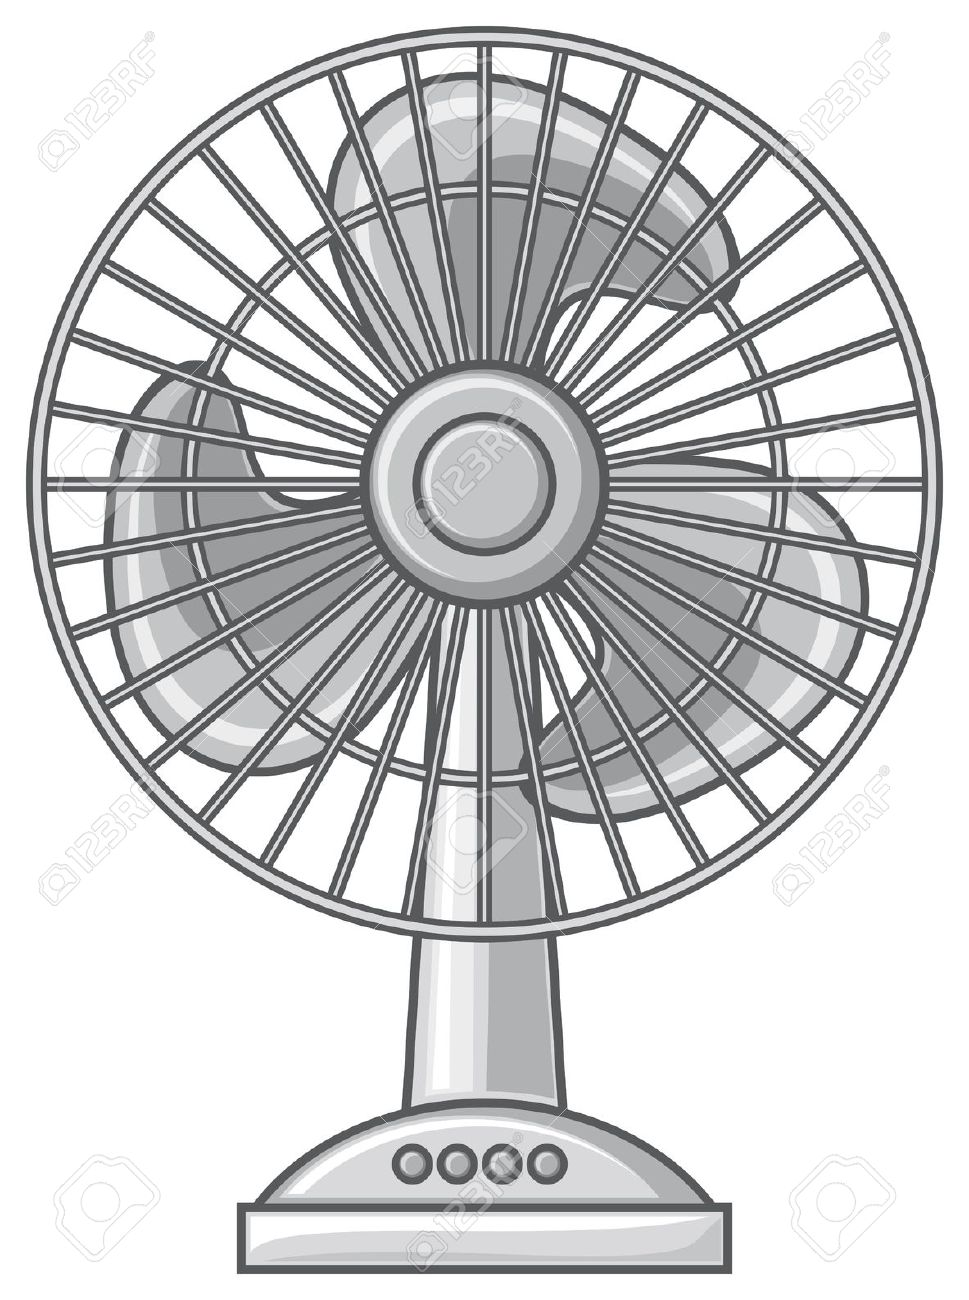 table fan clipart black and white 12 | Clipart Station for Fan Clipart Black And White  54lyp